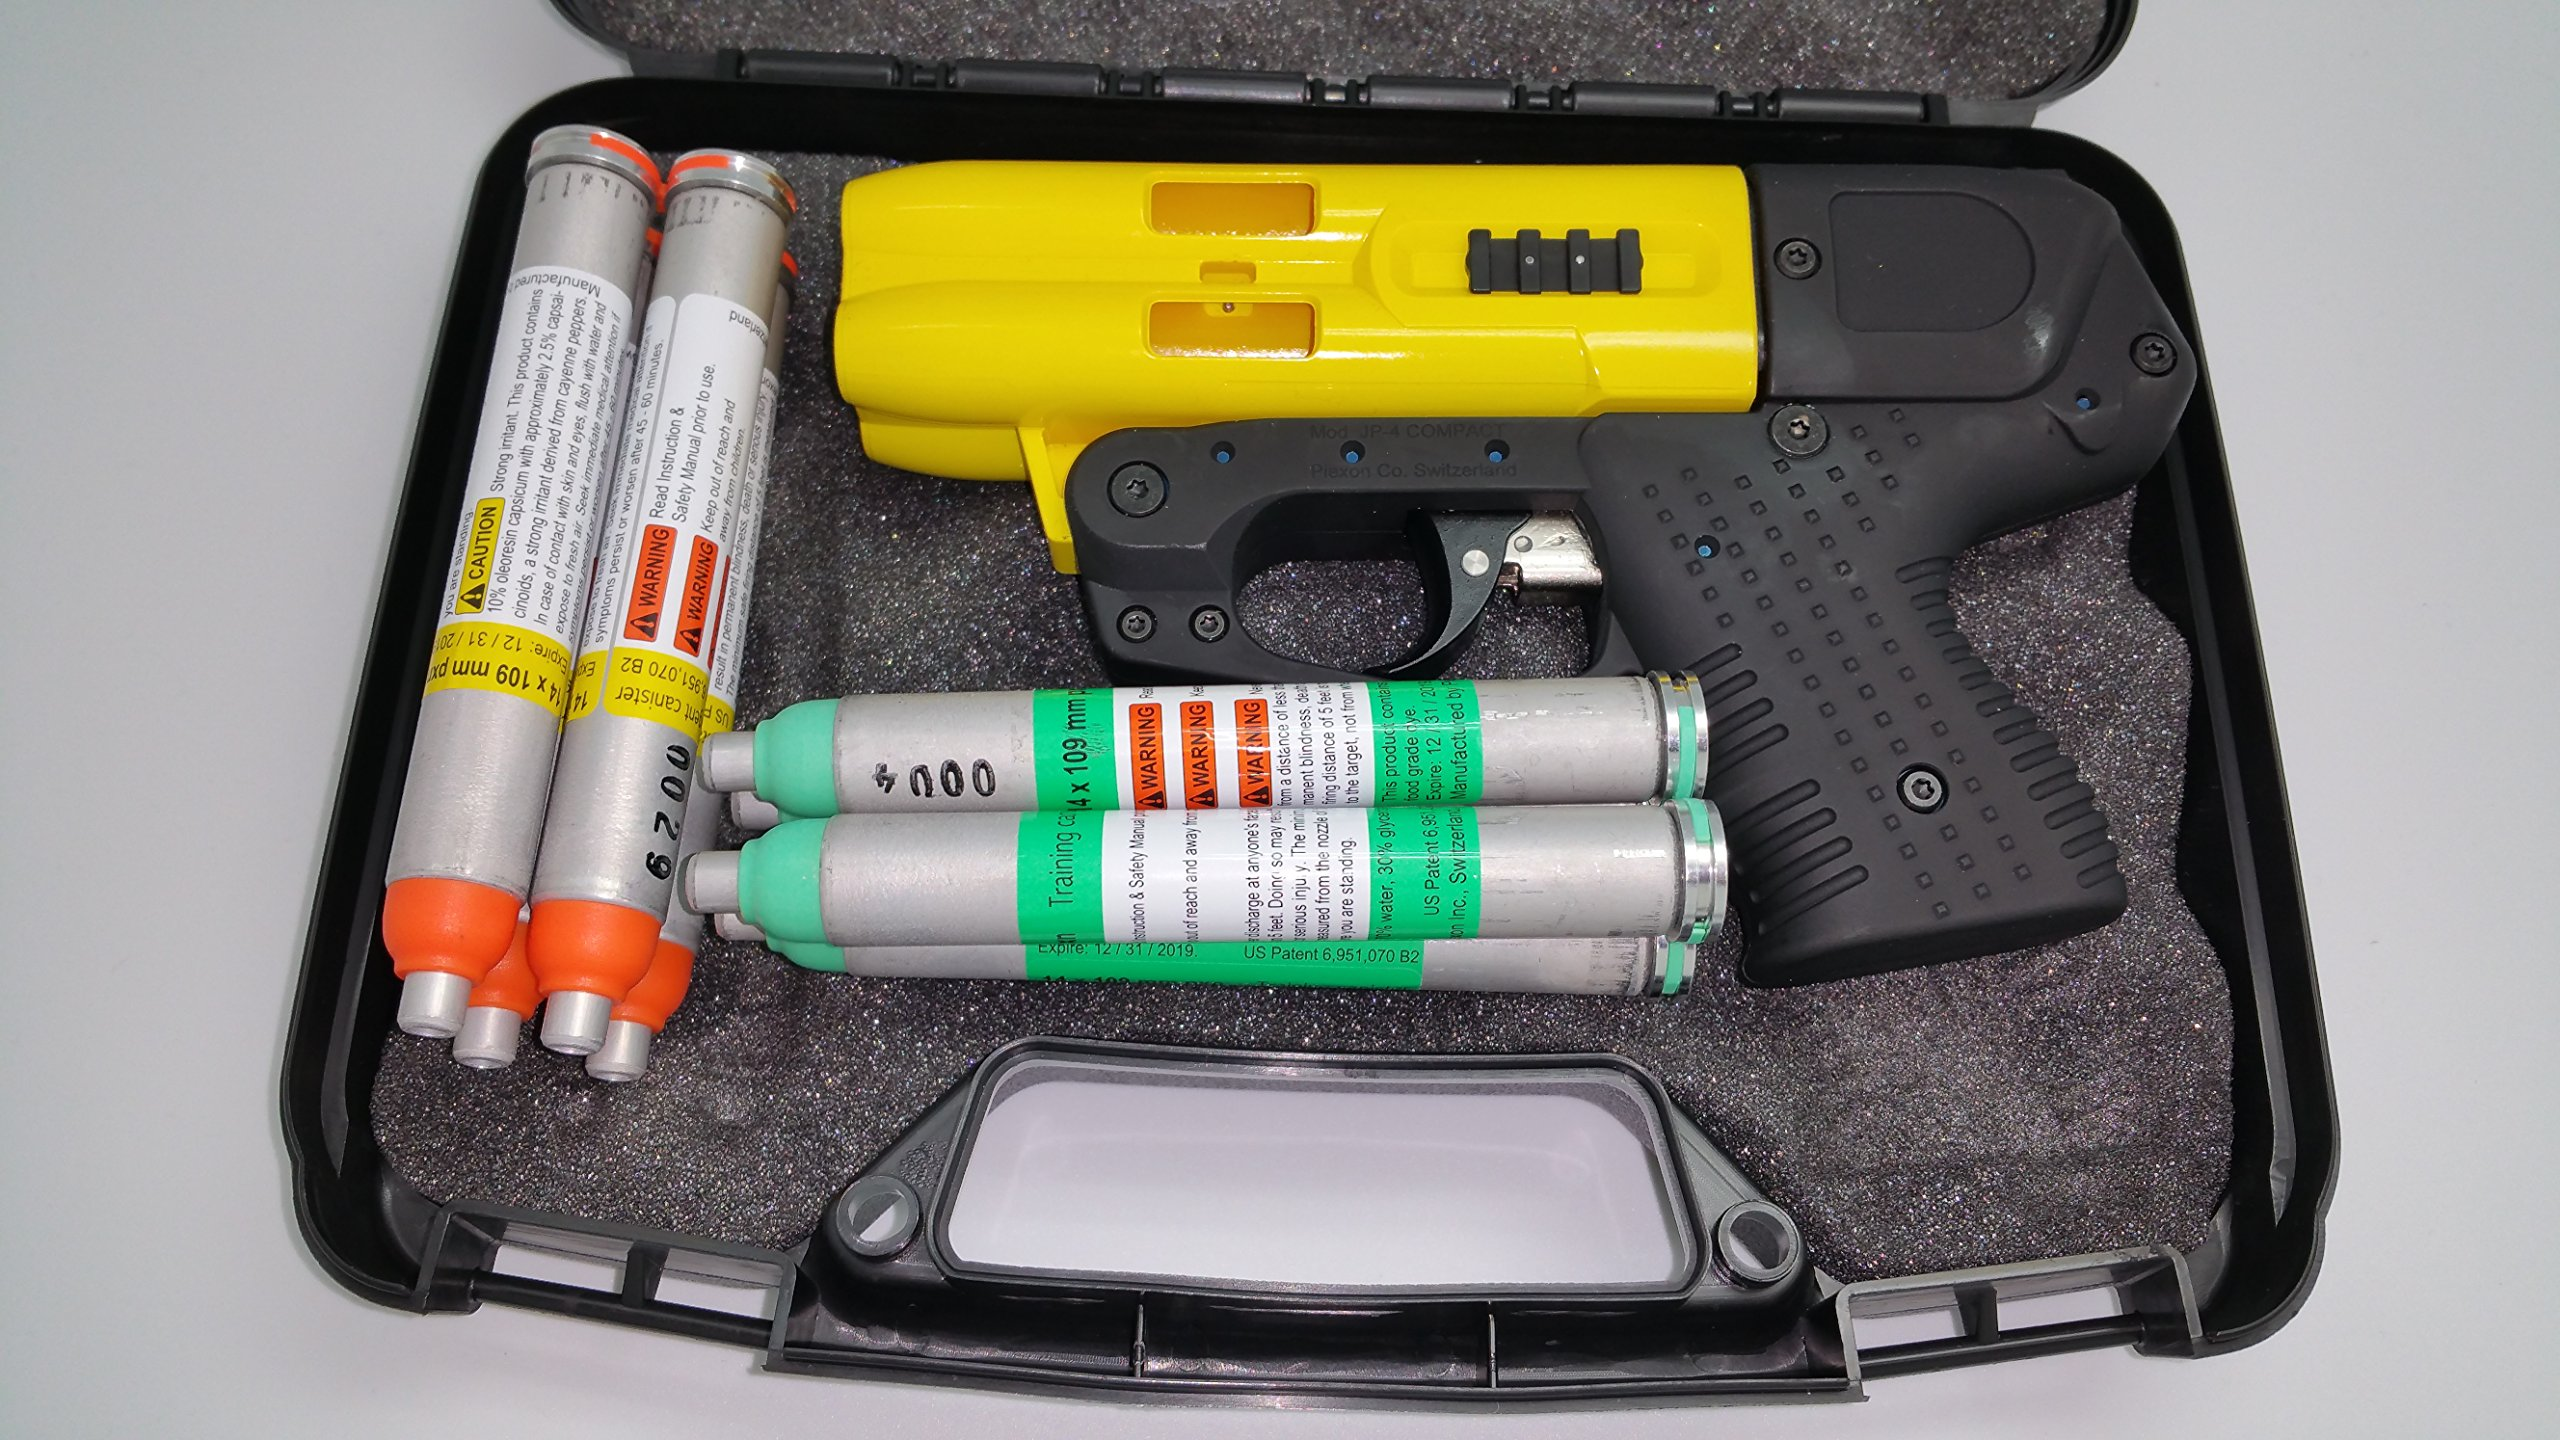 JPX 4 Shot Full Size Pepper Spray Gun Bundle with Practice Cartridges